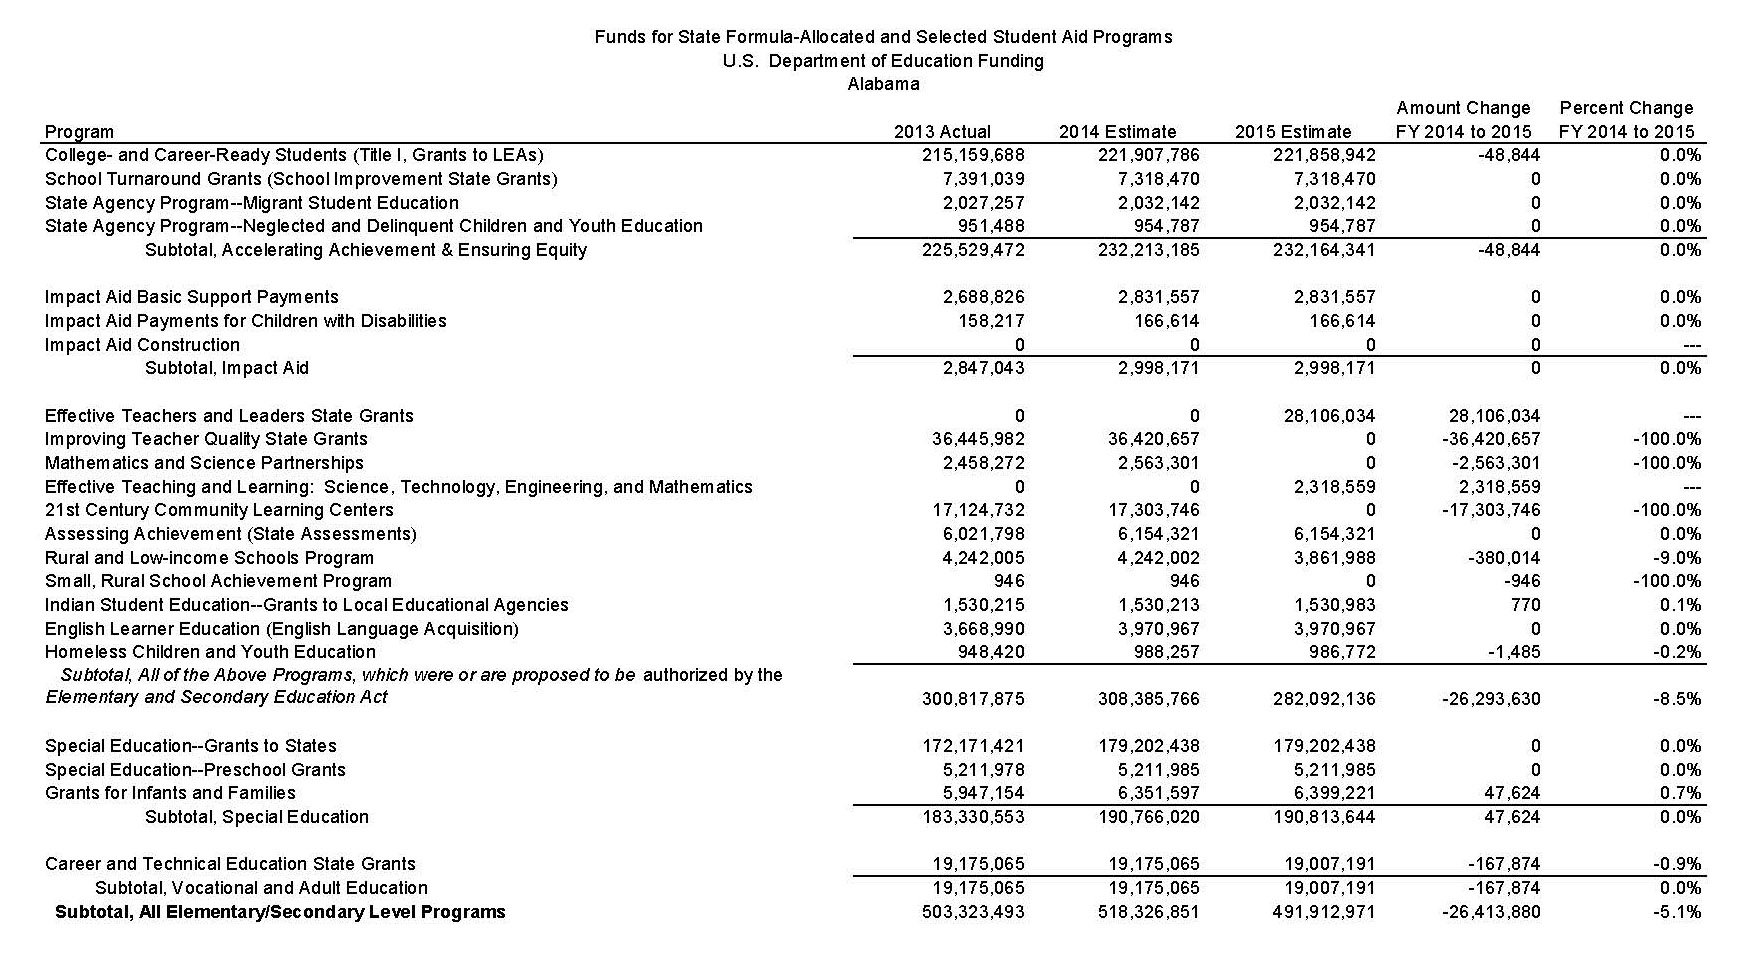 Federal Funding - Alabama FY13 to FY15